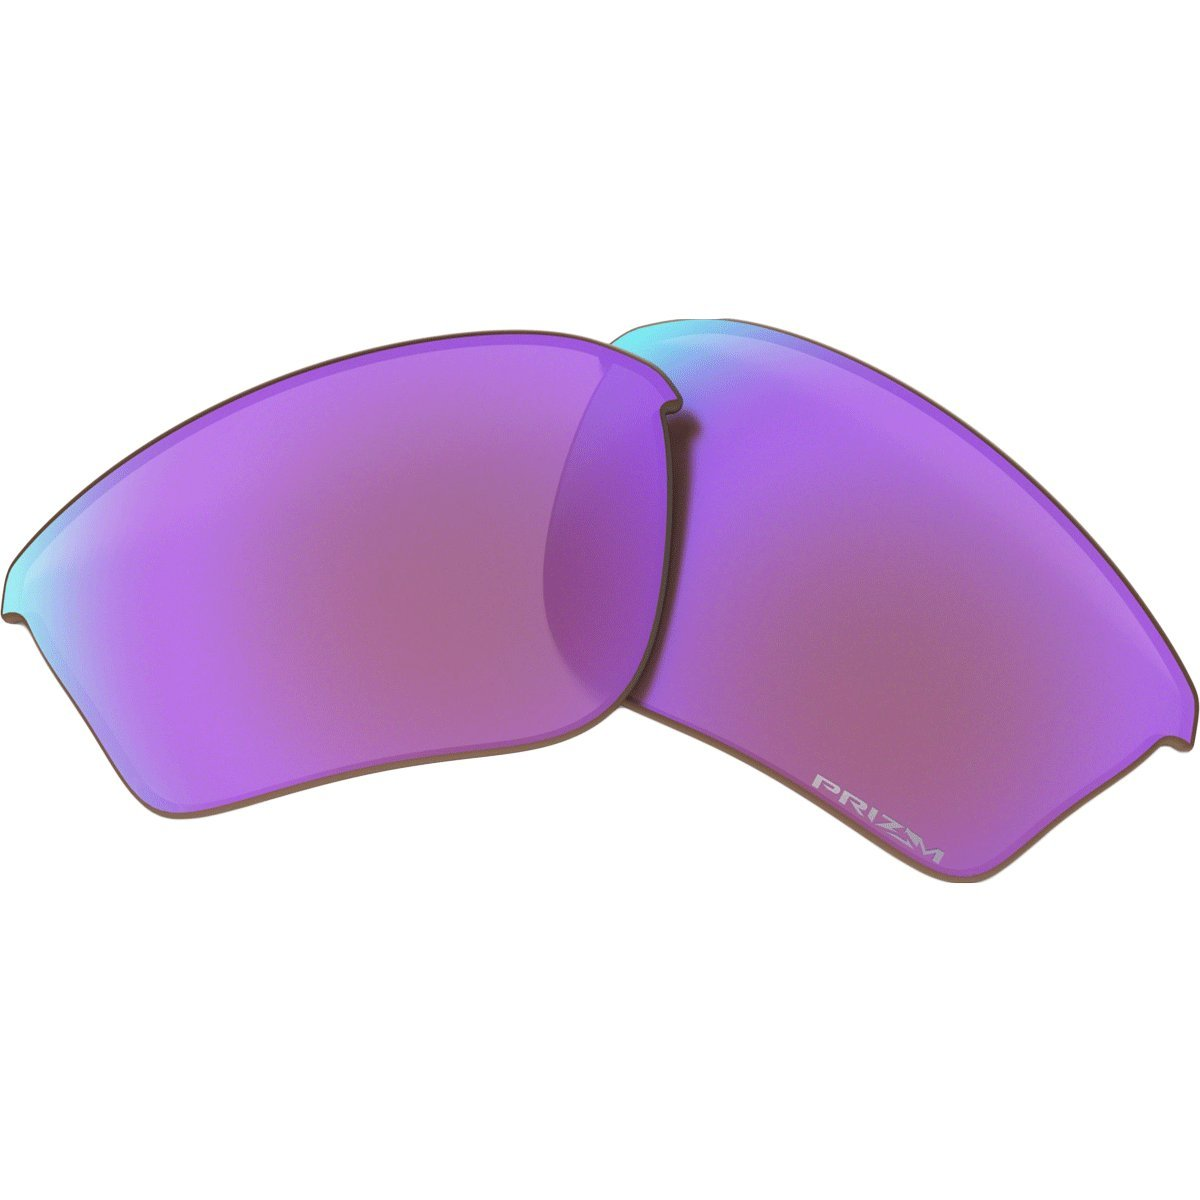 Oakley Half Jacket 2.0 XL Adult Replacement Lens - Prizm Golf/One Size by Oakley